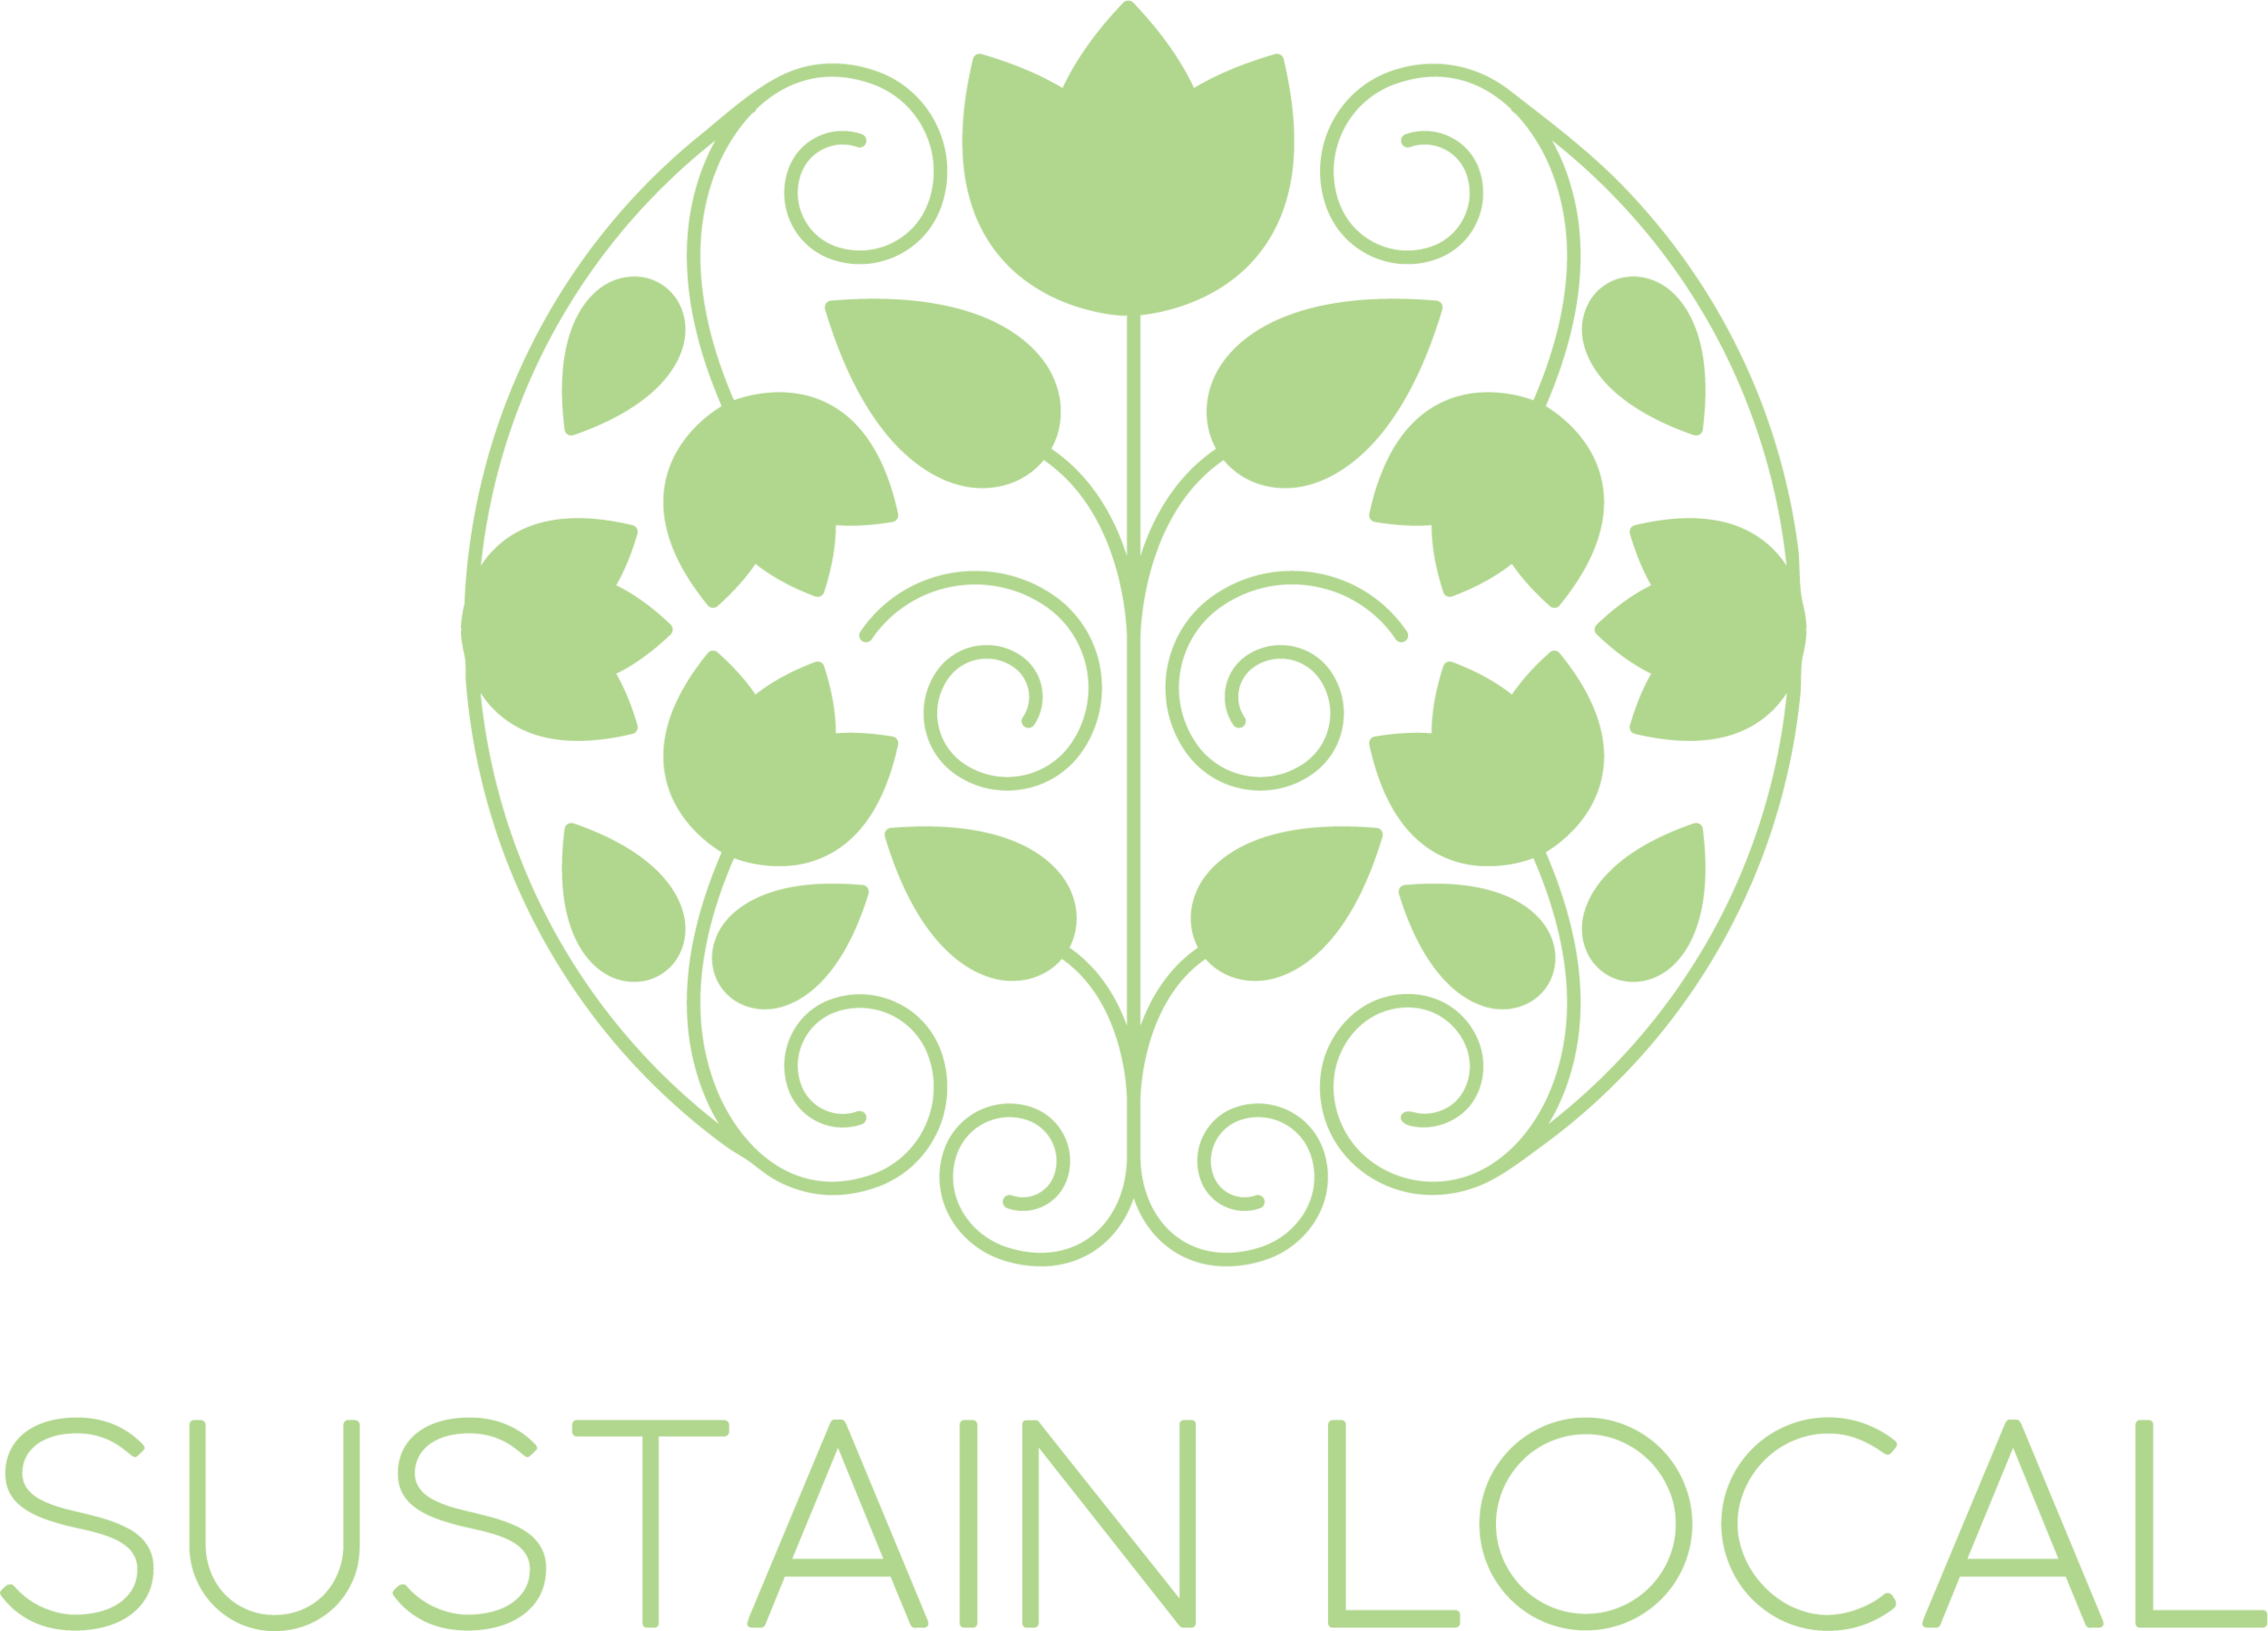 sustain local color.png